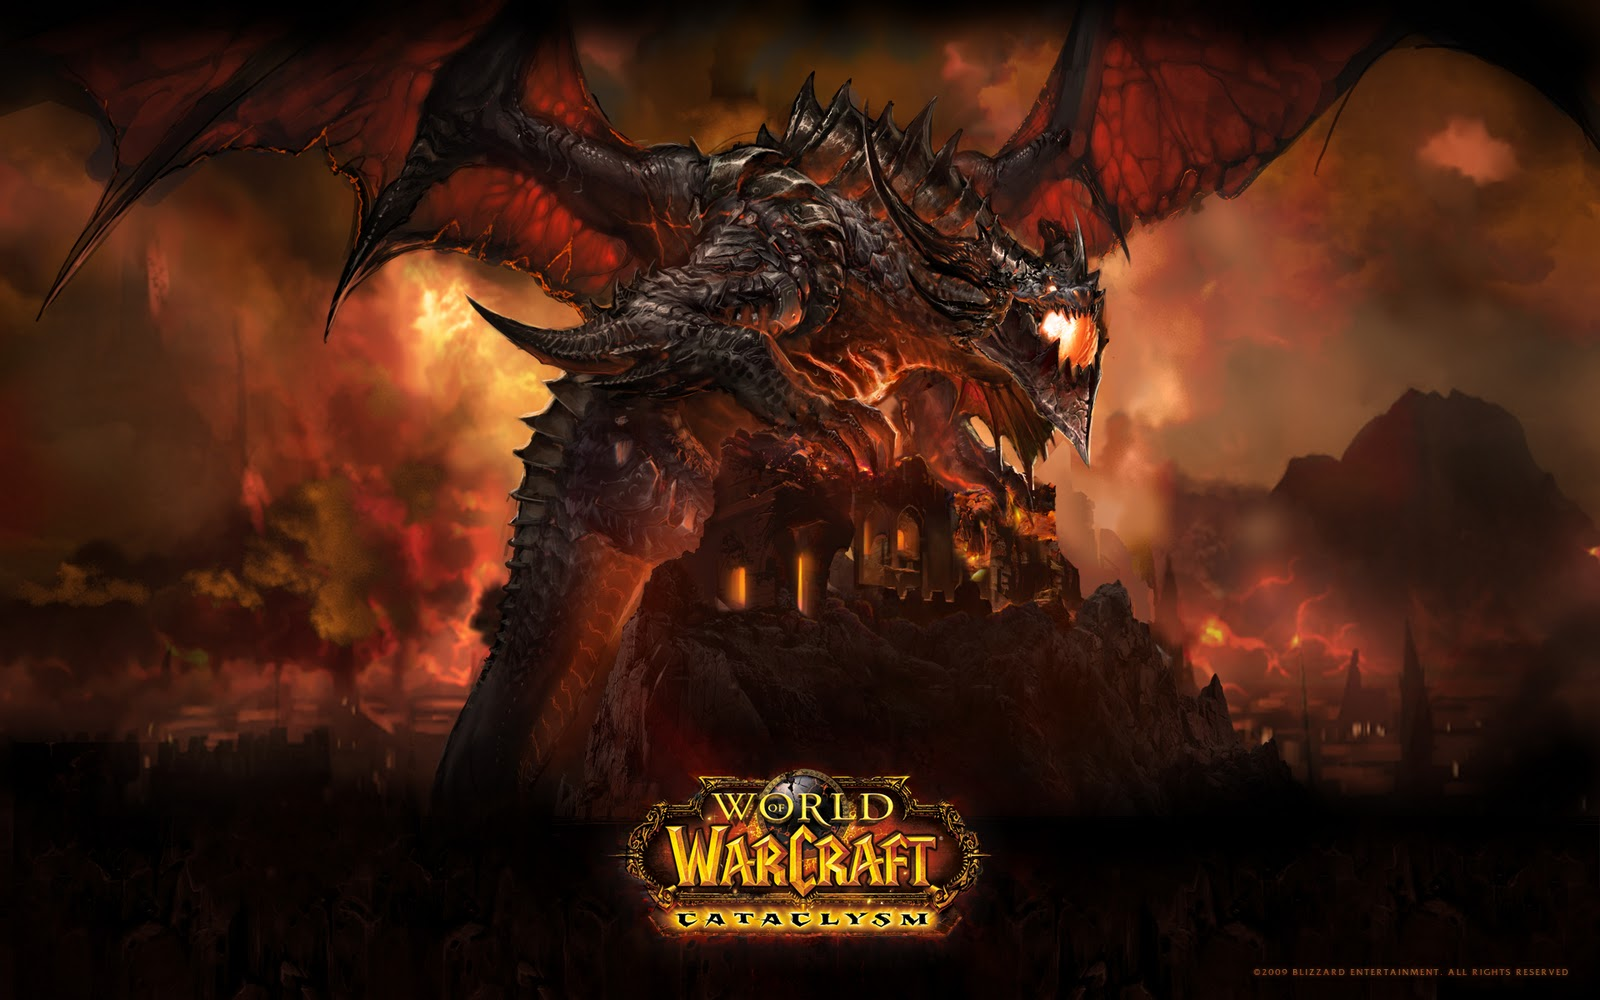 Of WarCraft Cataclysm Dragon HD Wallpapers Epic Desktop Backgrounds 1600x1000